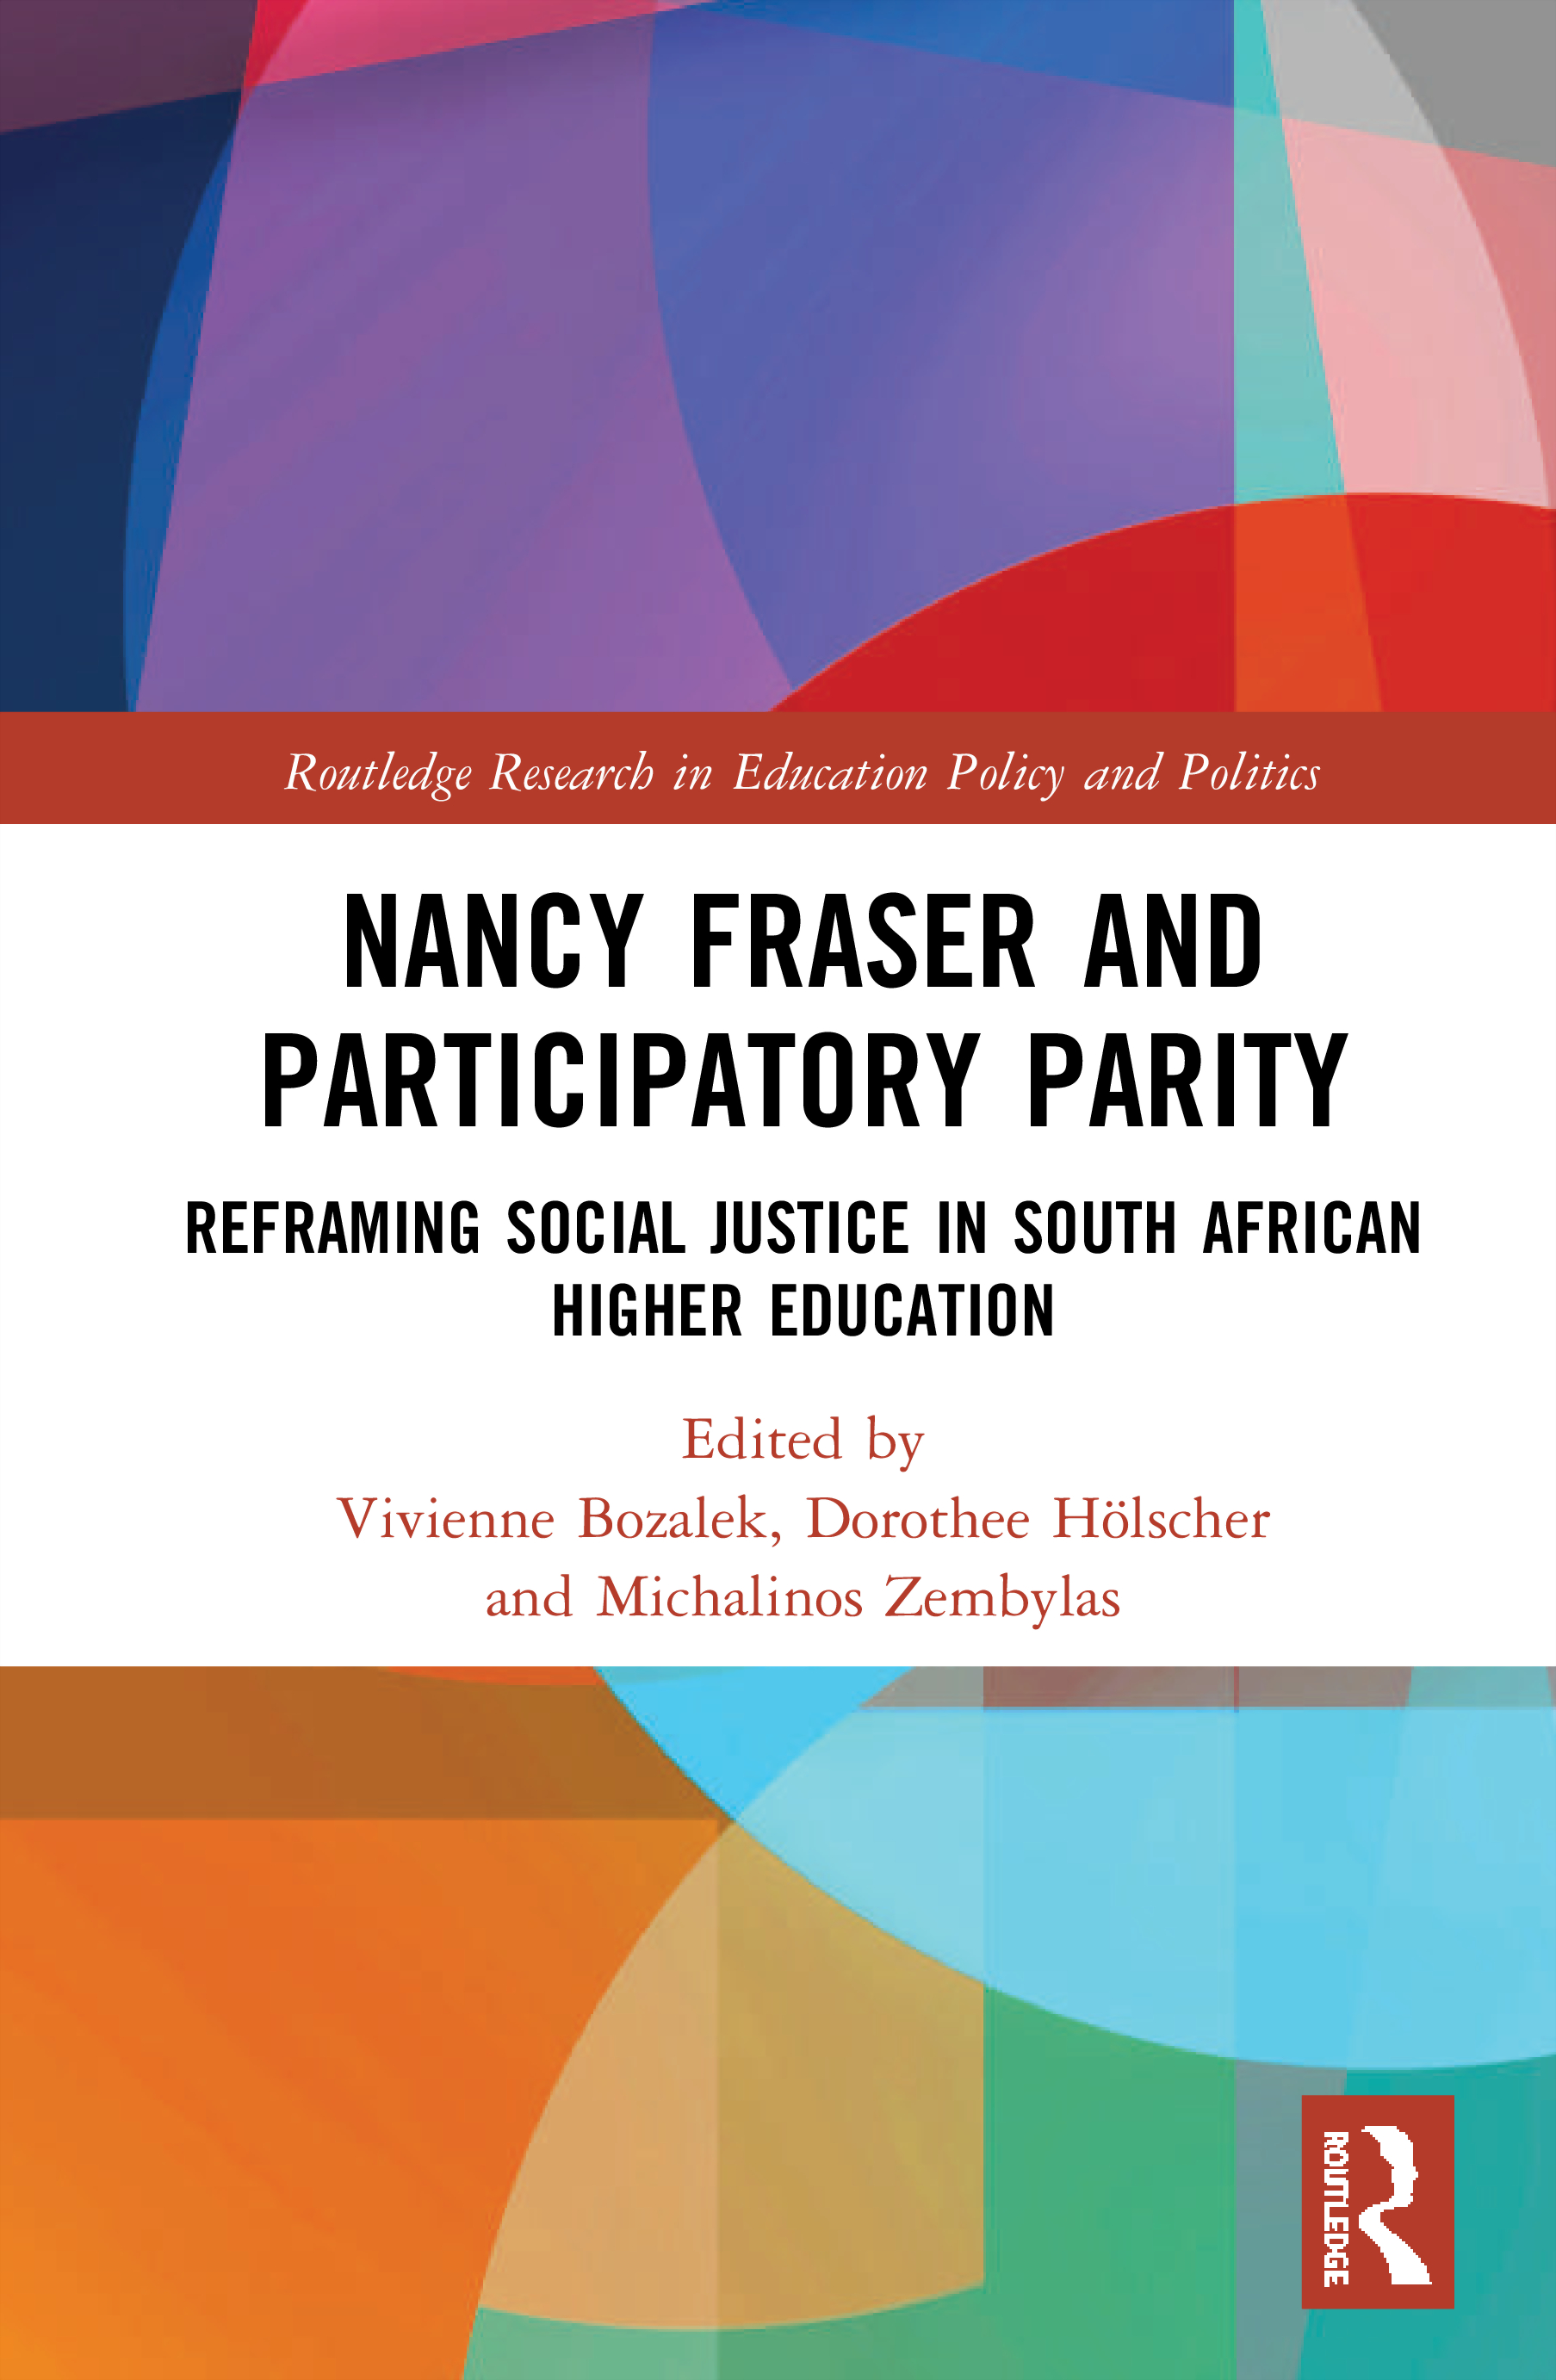 Nancy Fraser and Participatory Parity: Reframing Social Justice in South African Higher Education book cover